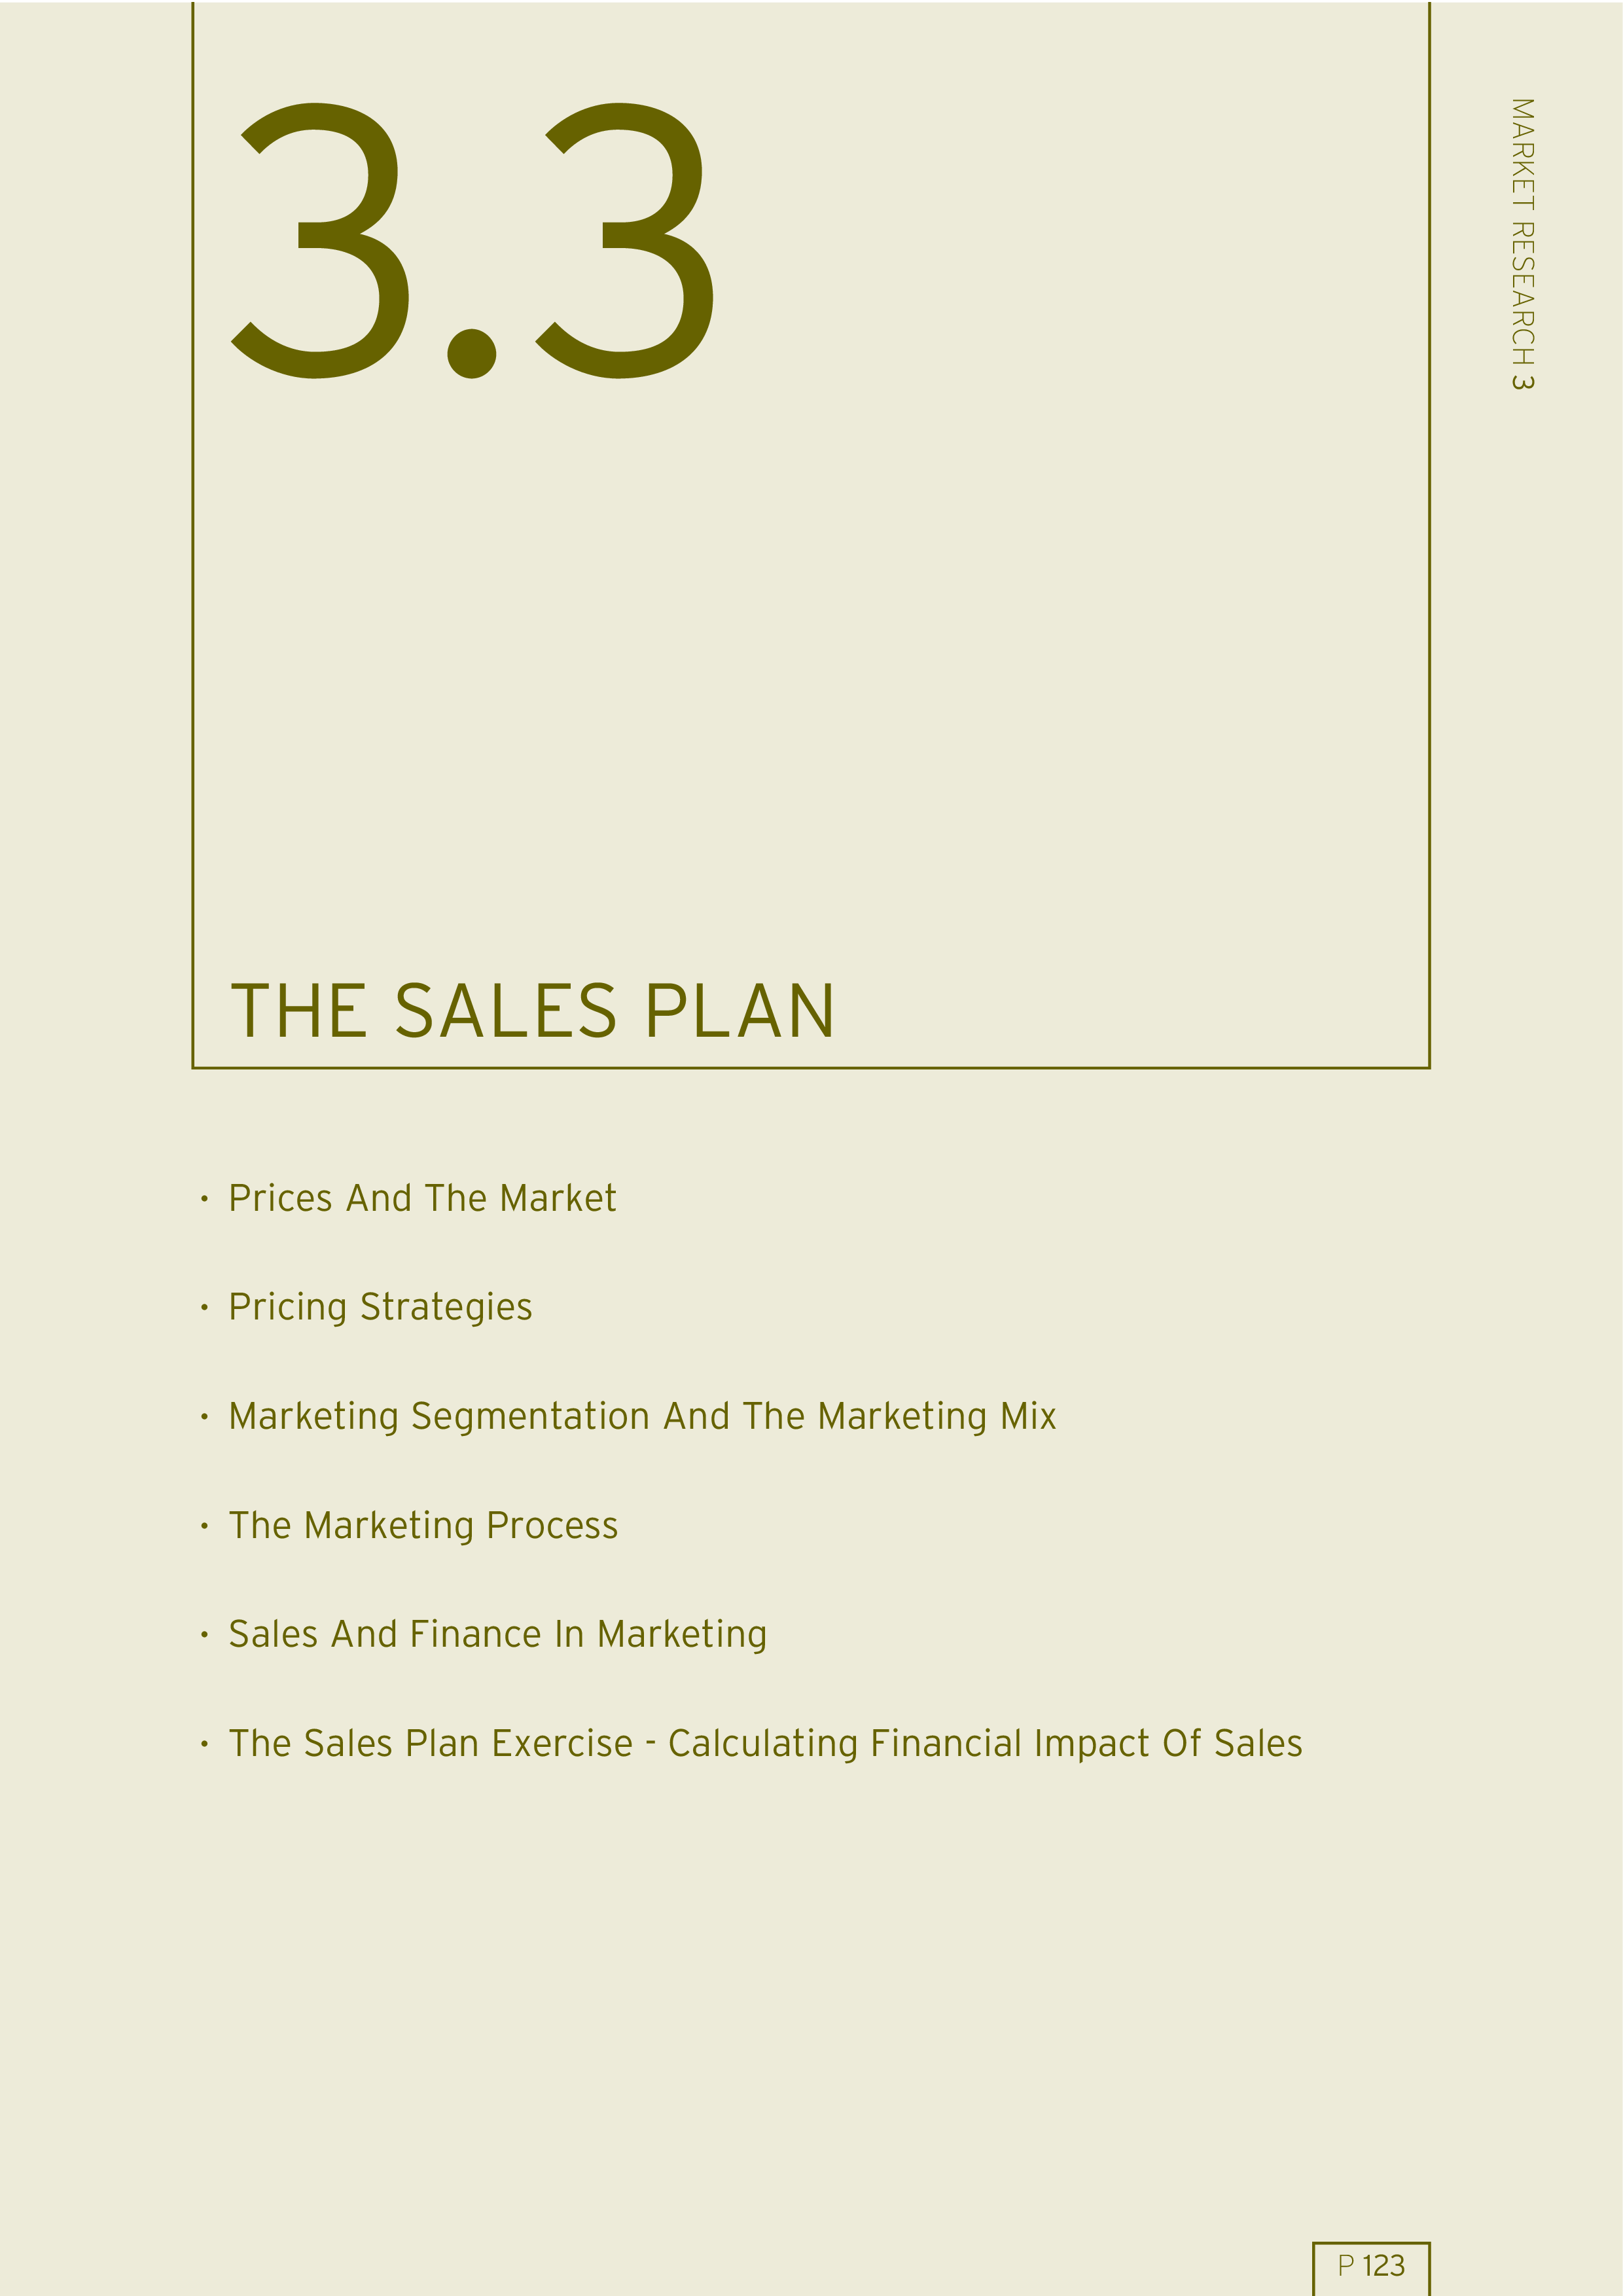 Free Personal Sales Business Plan Templates At